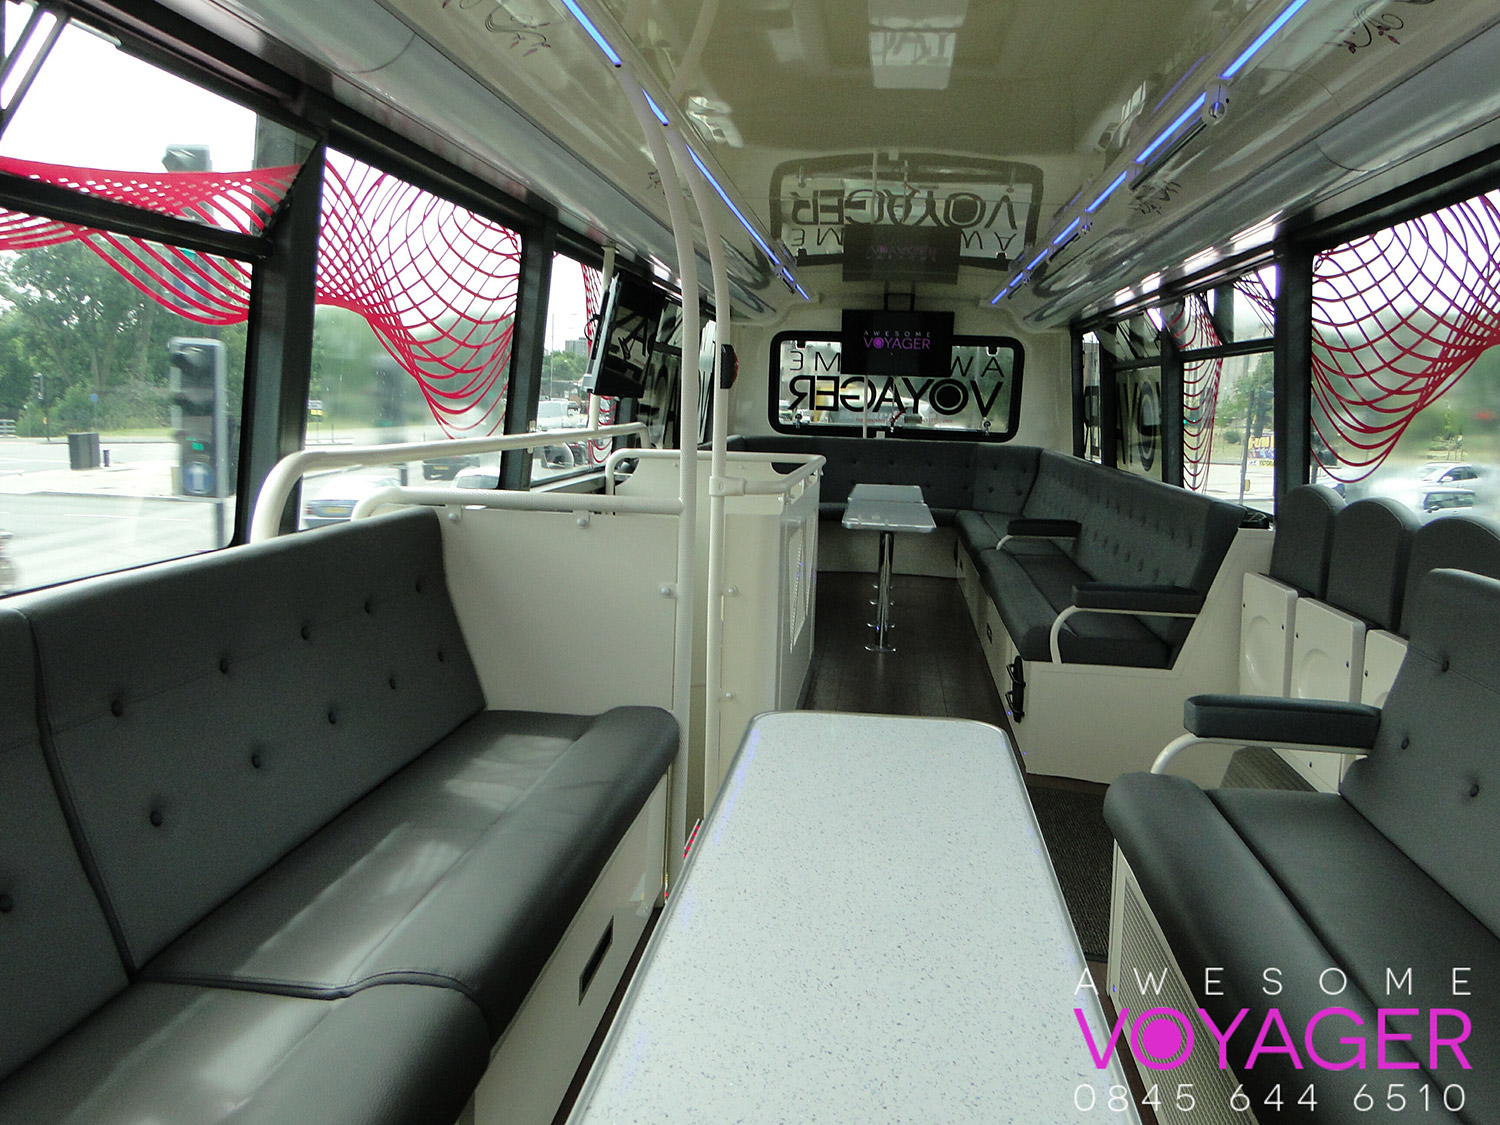 Awesome Voyager Party Bus